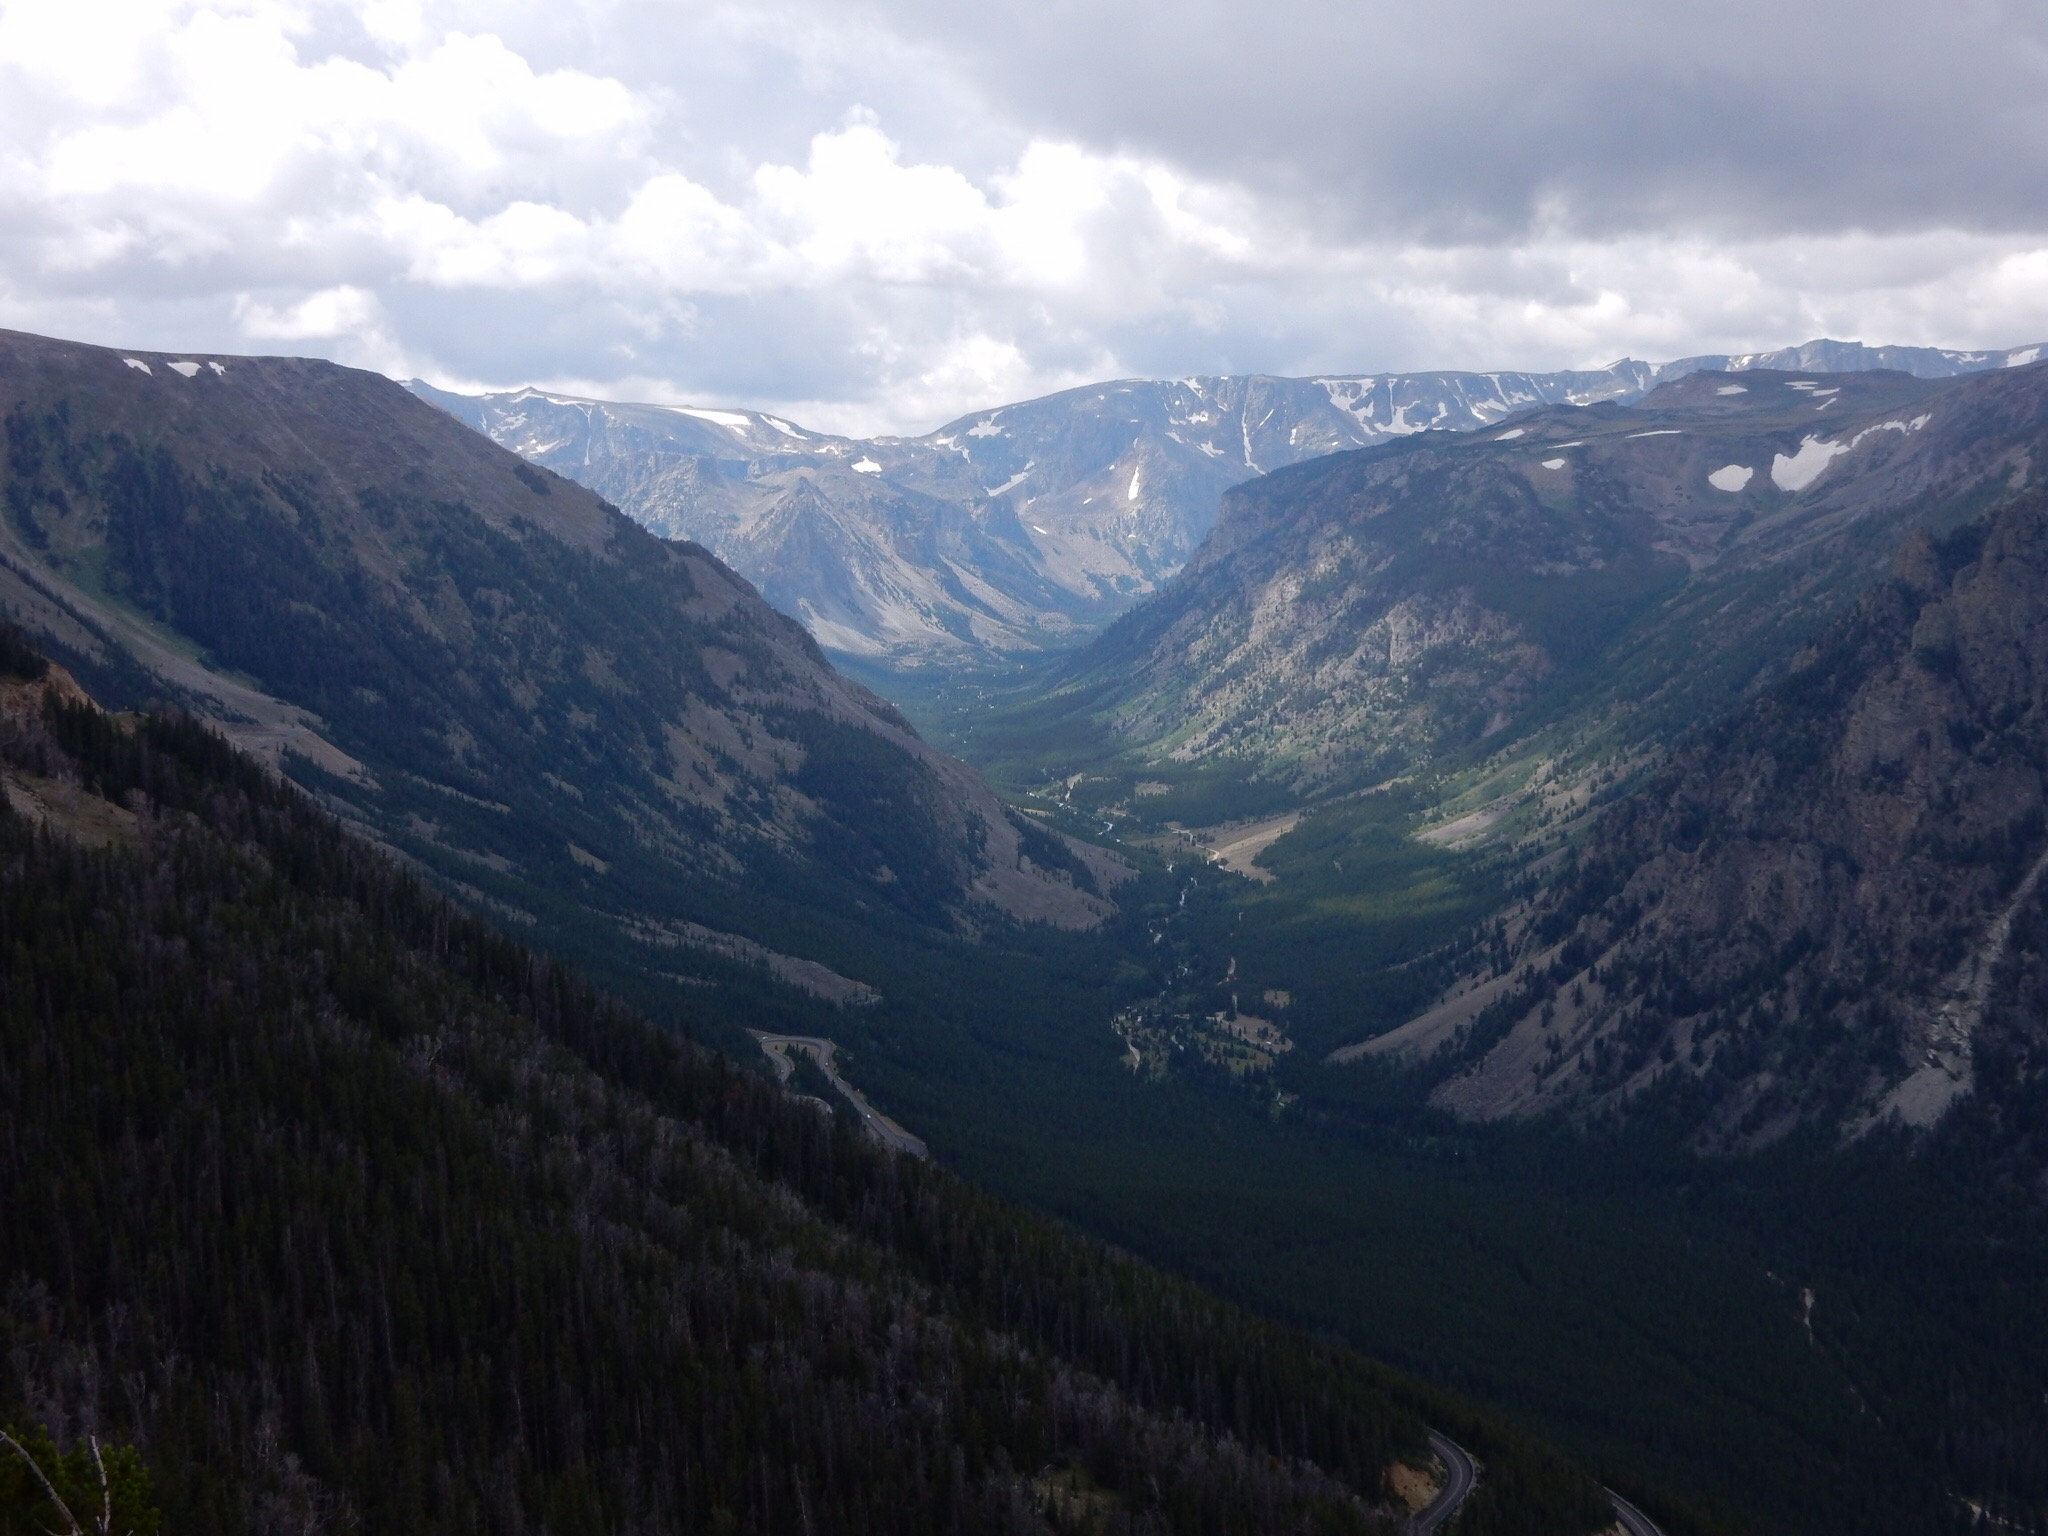 A view up a valley along the road up Beartooth Pass.V